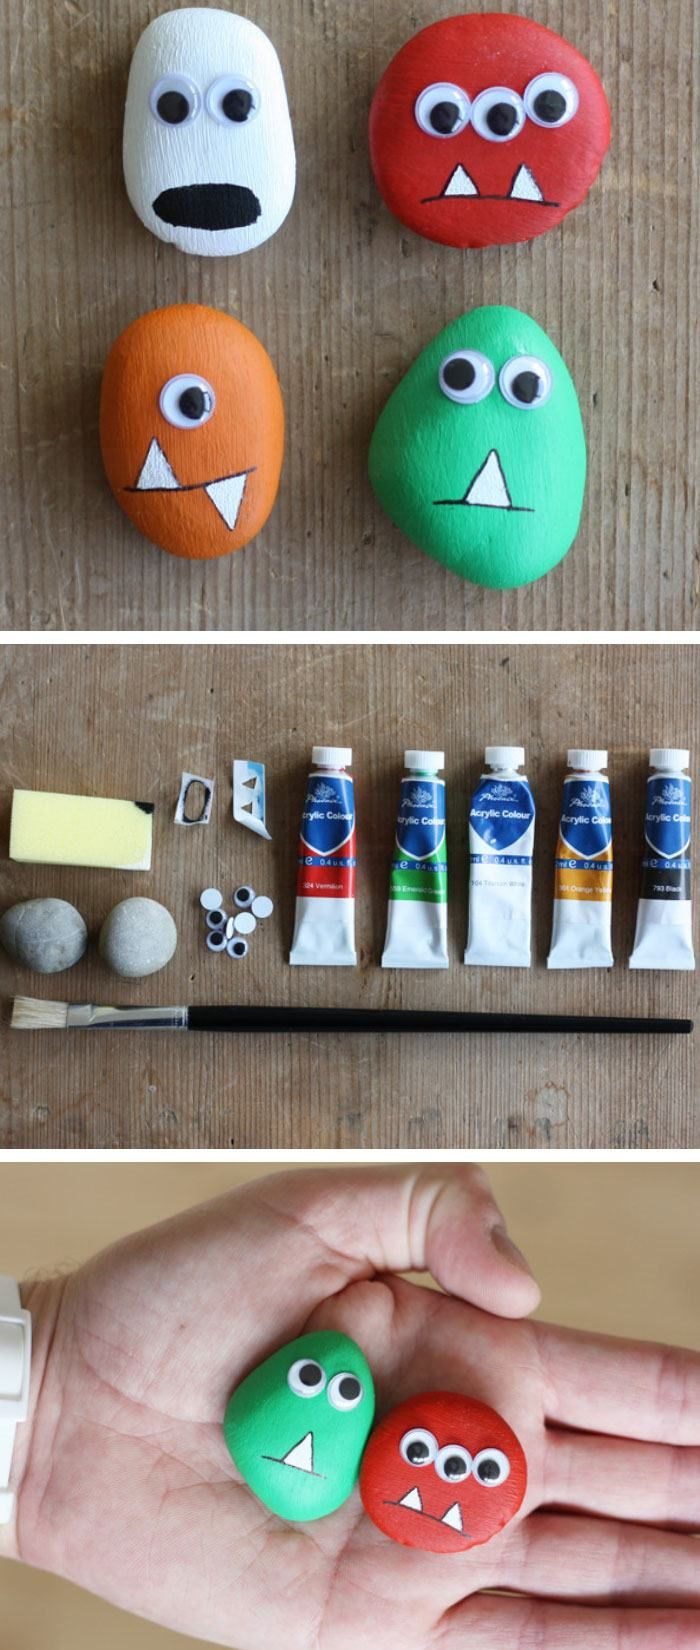 Pebble Monsters | Click Pic for 20 DIY Halloween Decorations for Kids to Make | Cheap and Easy Halloween Decorations on a Budget